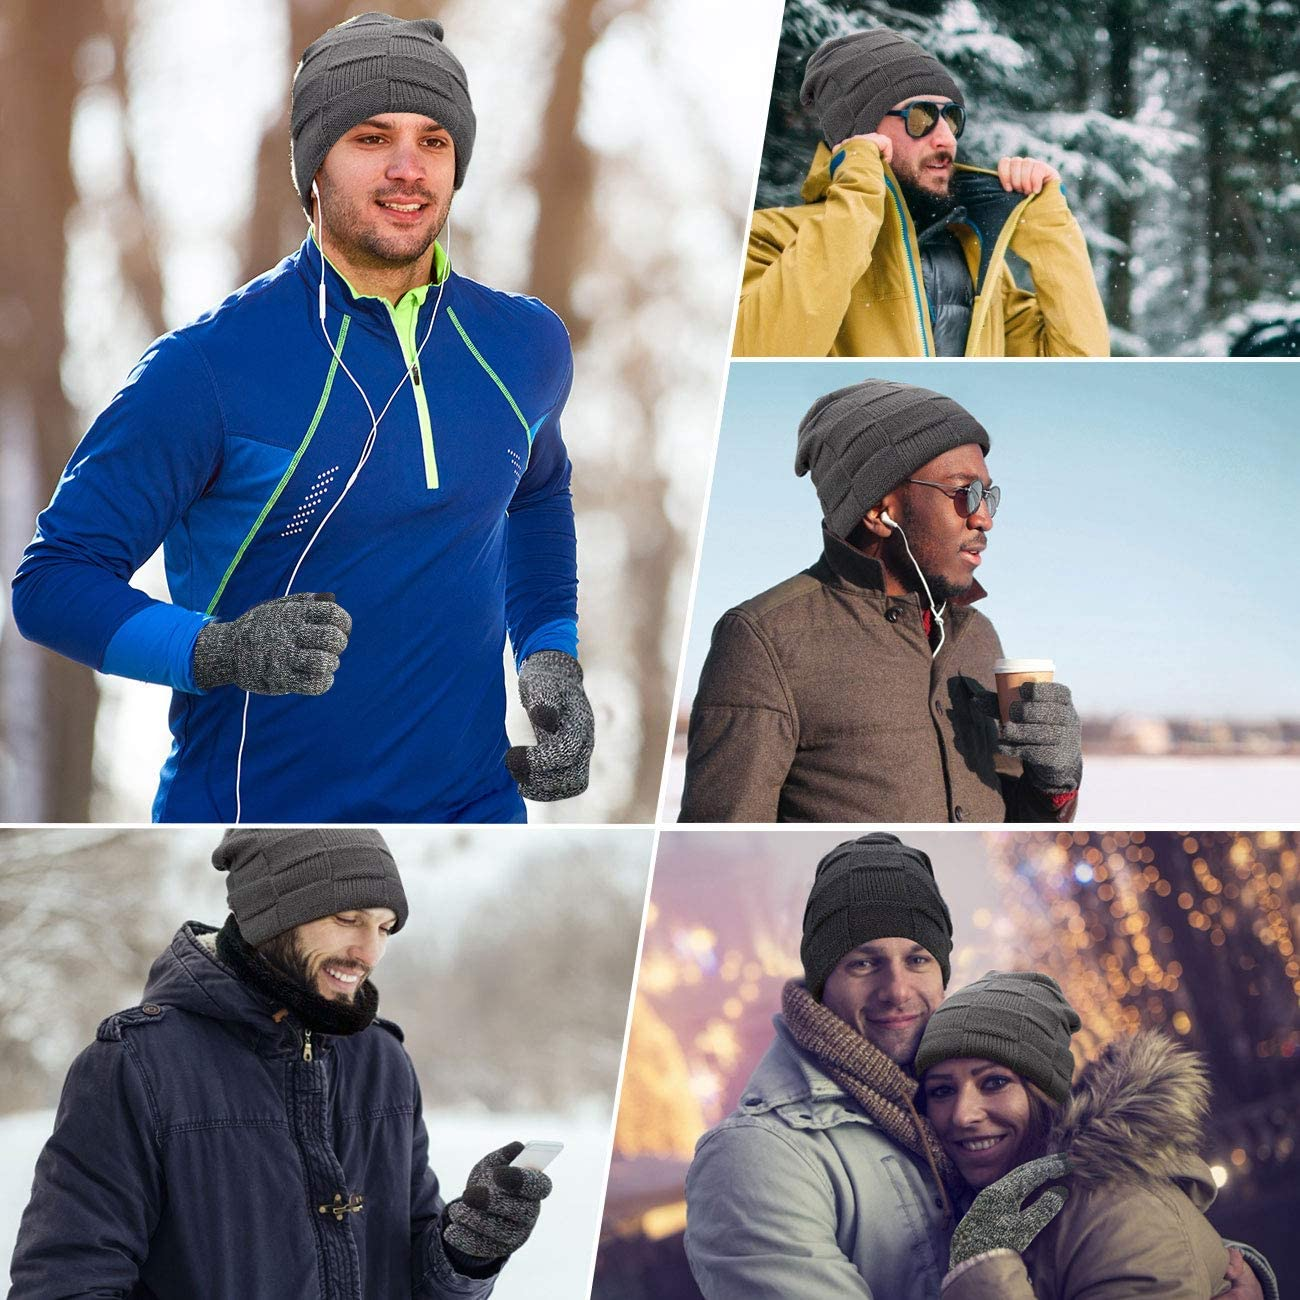 Petrunup Winter Warm Knit Slouch Beanie Hat Skiing Neck Warmer Scarf Touchscreen Gloves 3//2 Pcs Set with Double-Layer Fleece Lining for Men Women